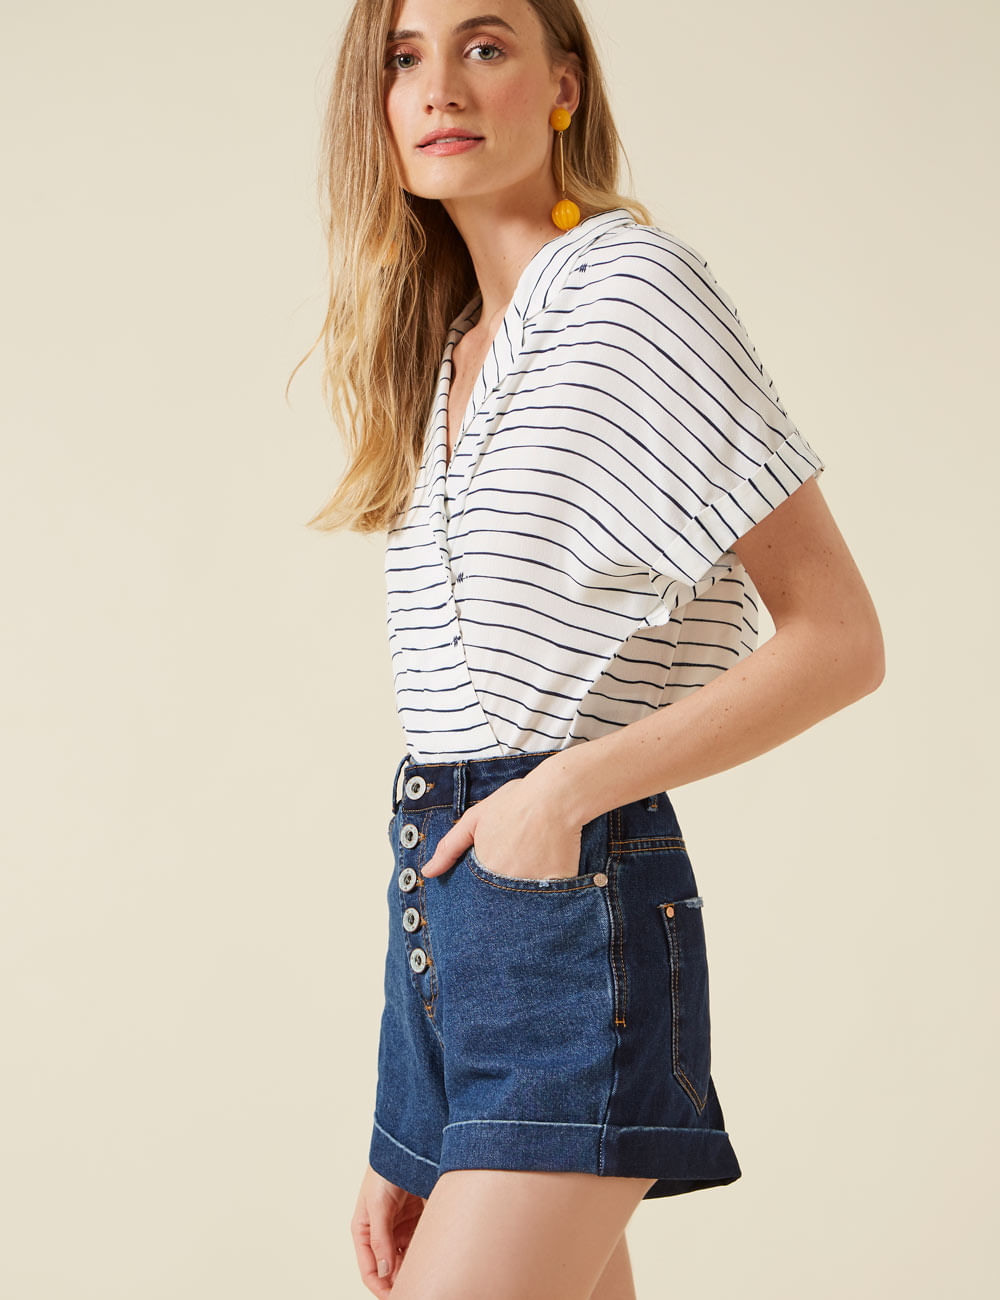 05020207_613_1-SHORT-JEANS-ECO